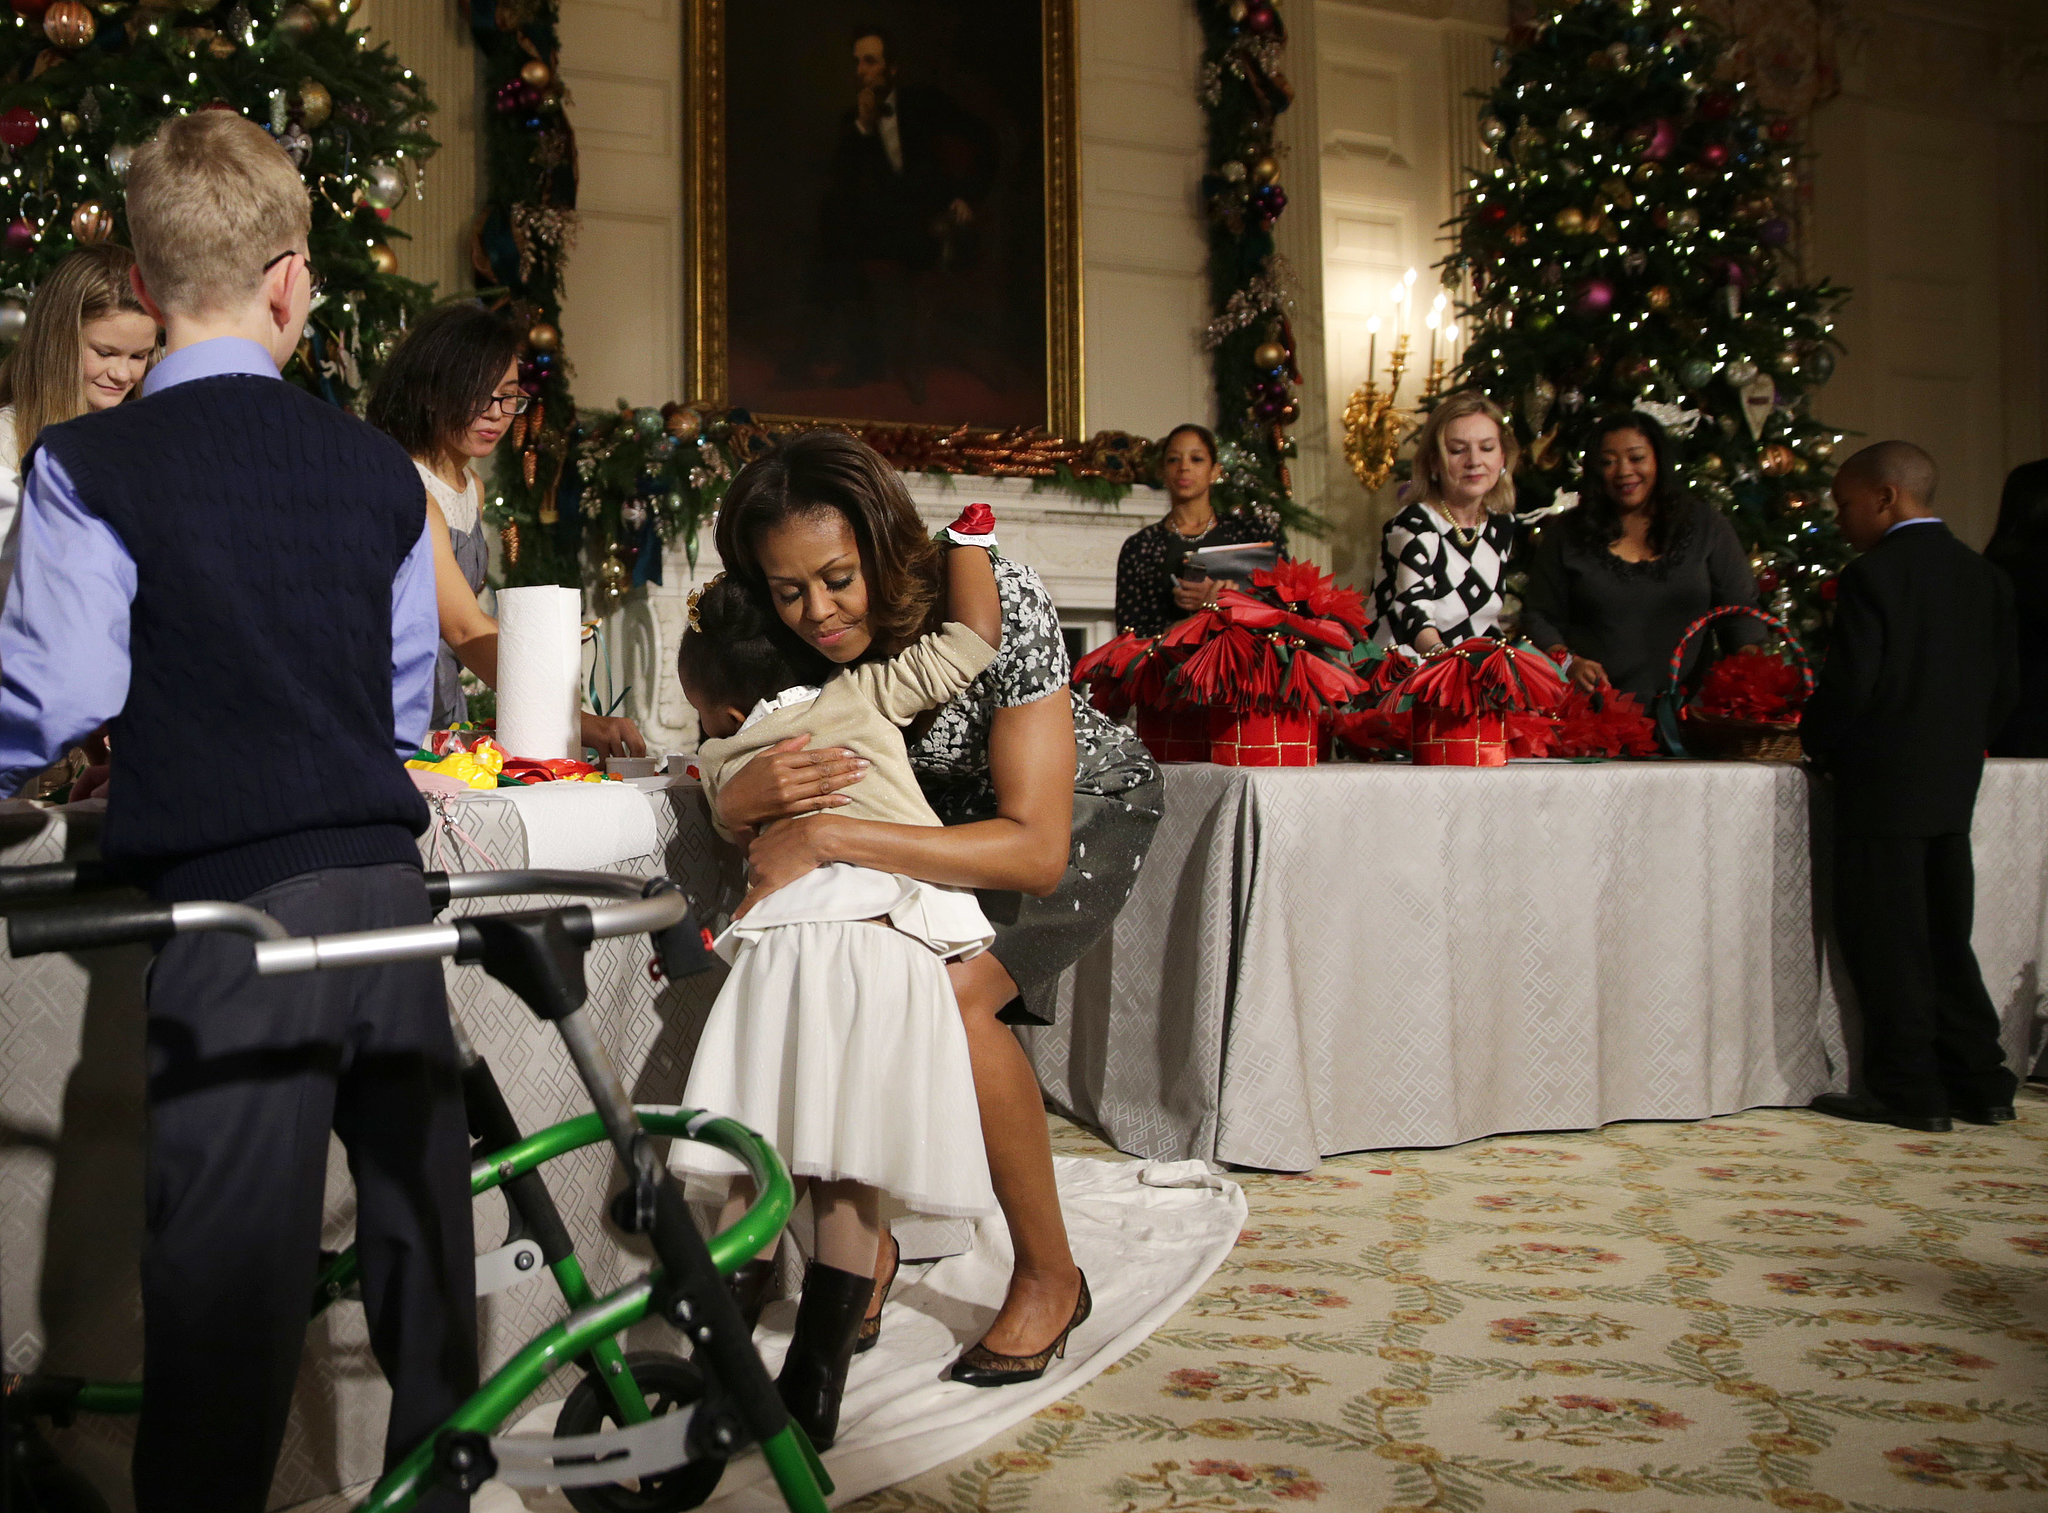 Michelle Obama leaned down for an embrace while introducing the 2013 White House holiday decorations.